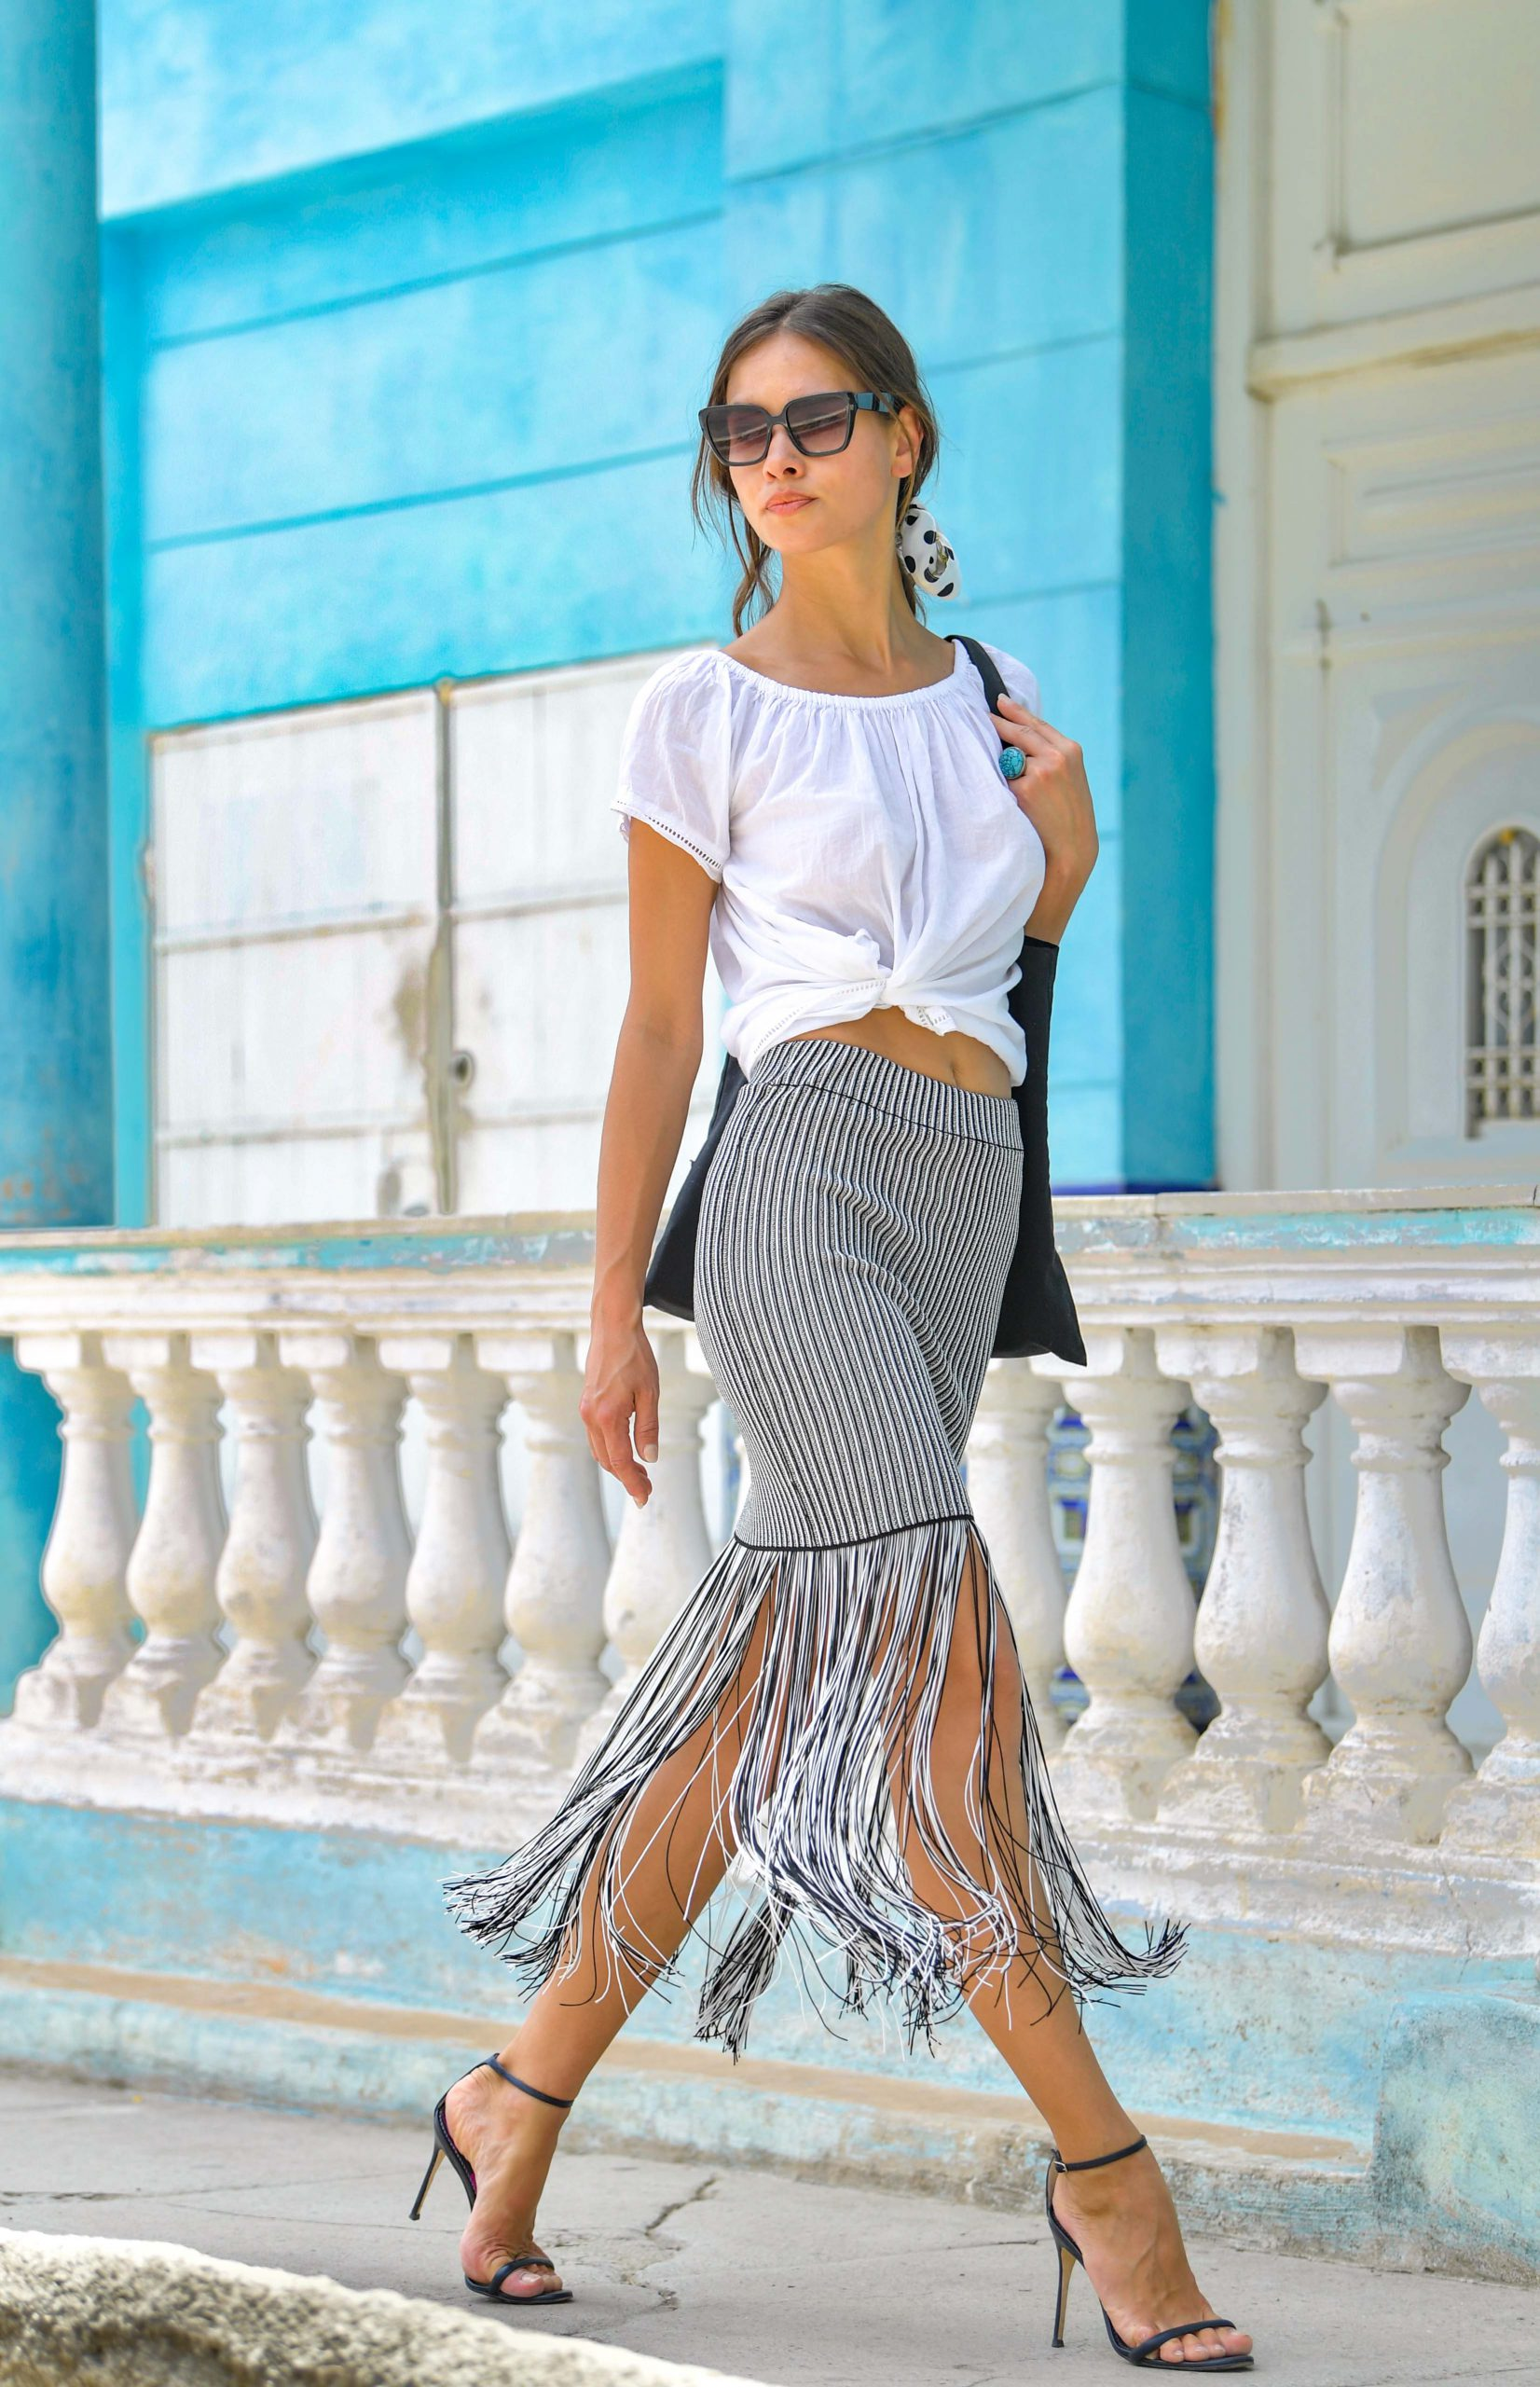 Fashion in Cuba by Peter Mueller Photography 99